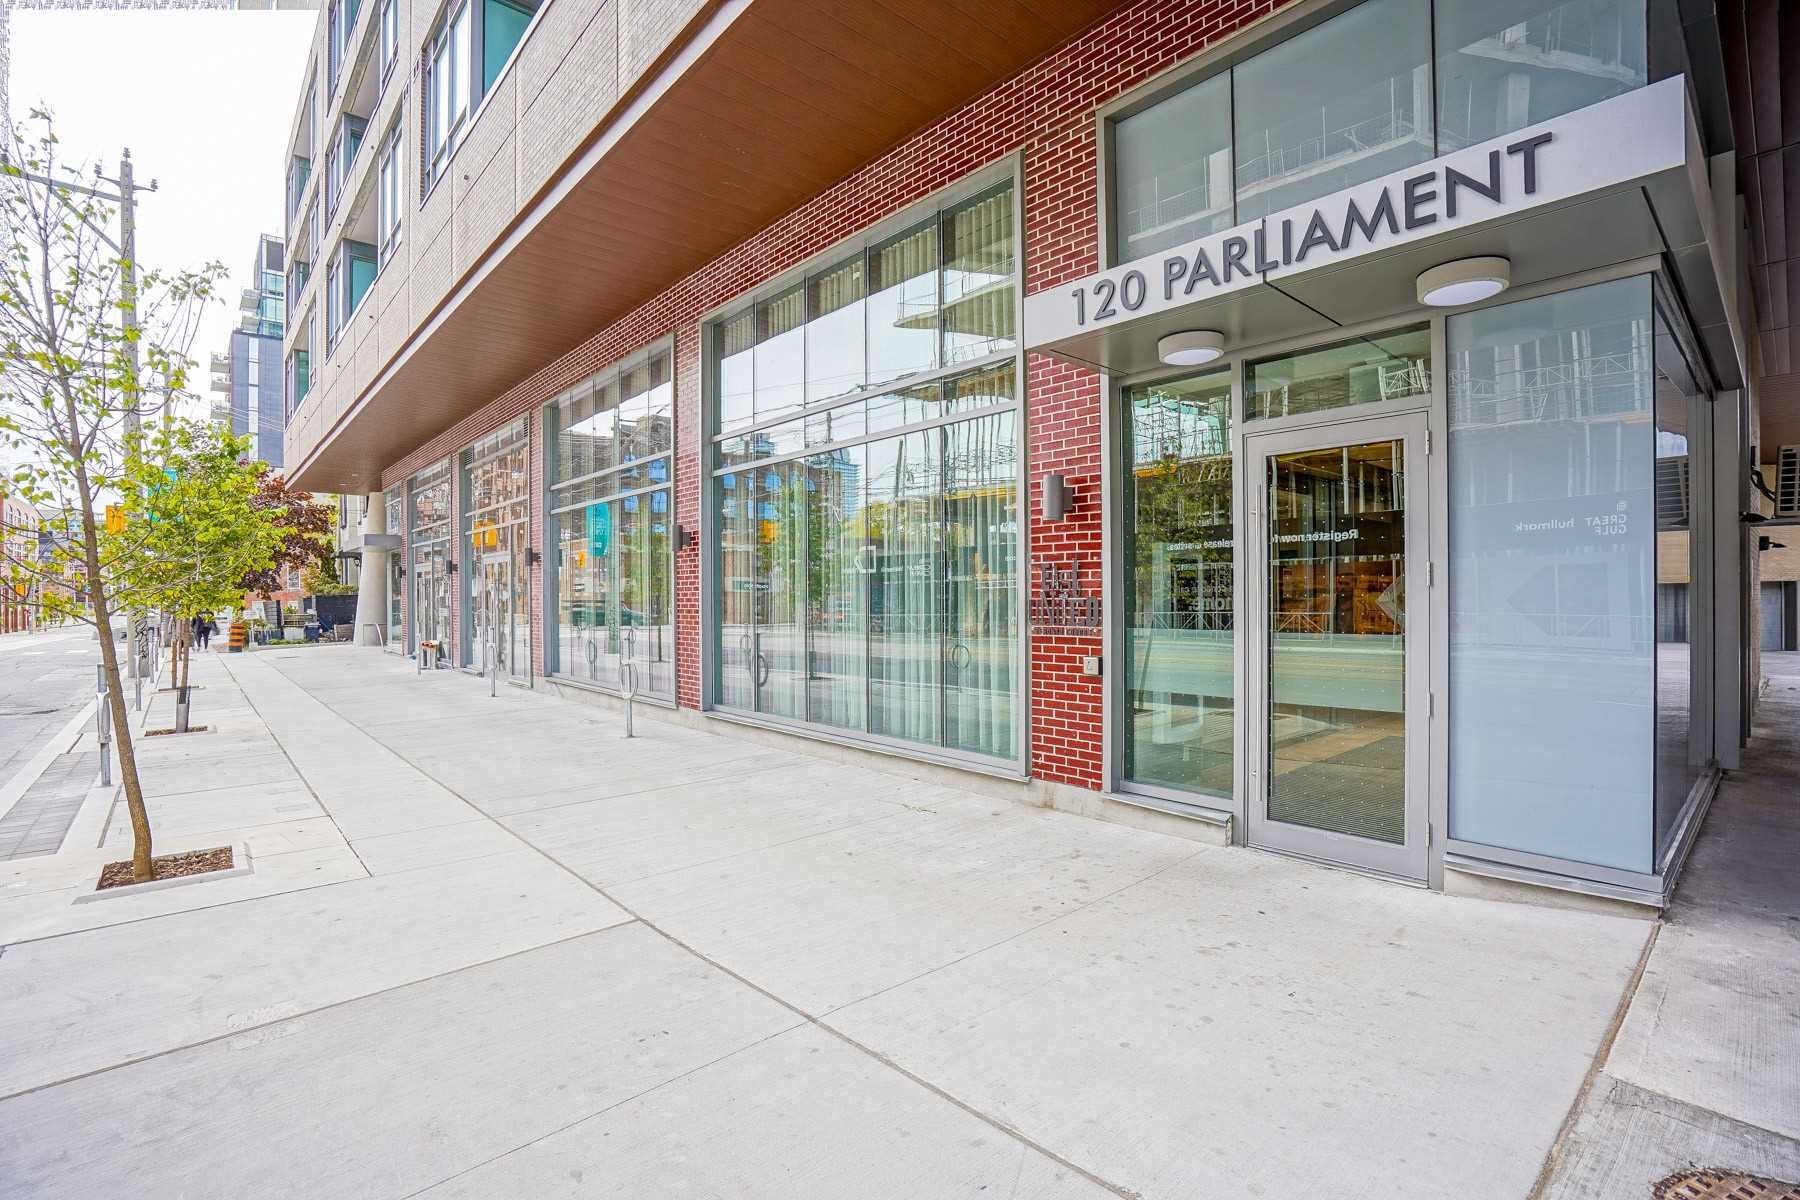 120 Parliament St, Toronto, Ontario M5A2Y8, 1 Bedroom Bedrooms, 4 Rooms Rooms,1 BathroomBathrooms,Condo Apt,For Sale,Parliament,C4950675